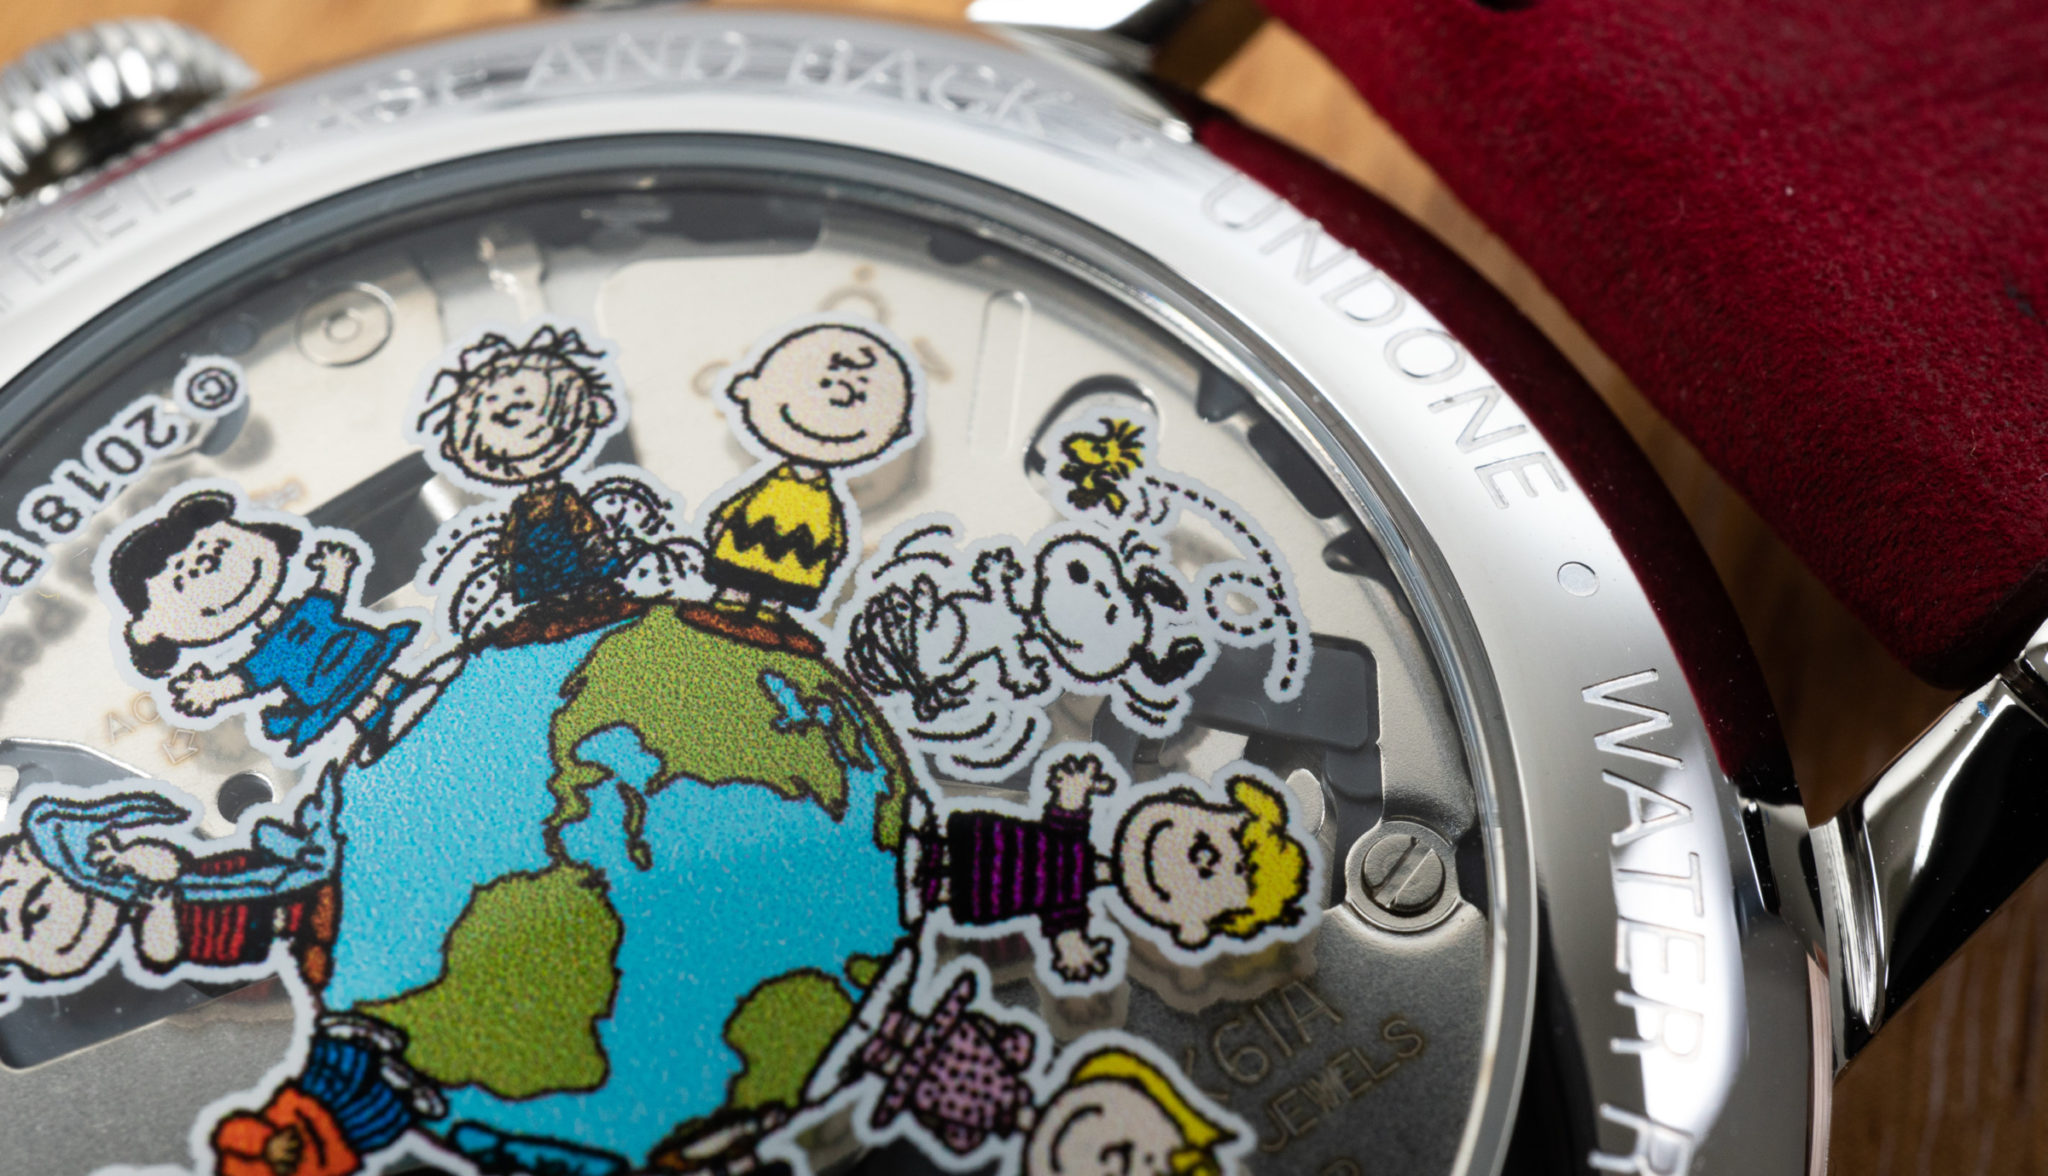 UNDONE Snoopy One World Meca Quarz Seiko